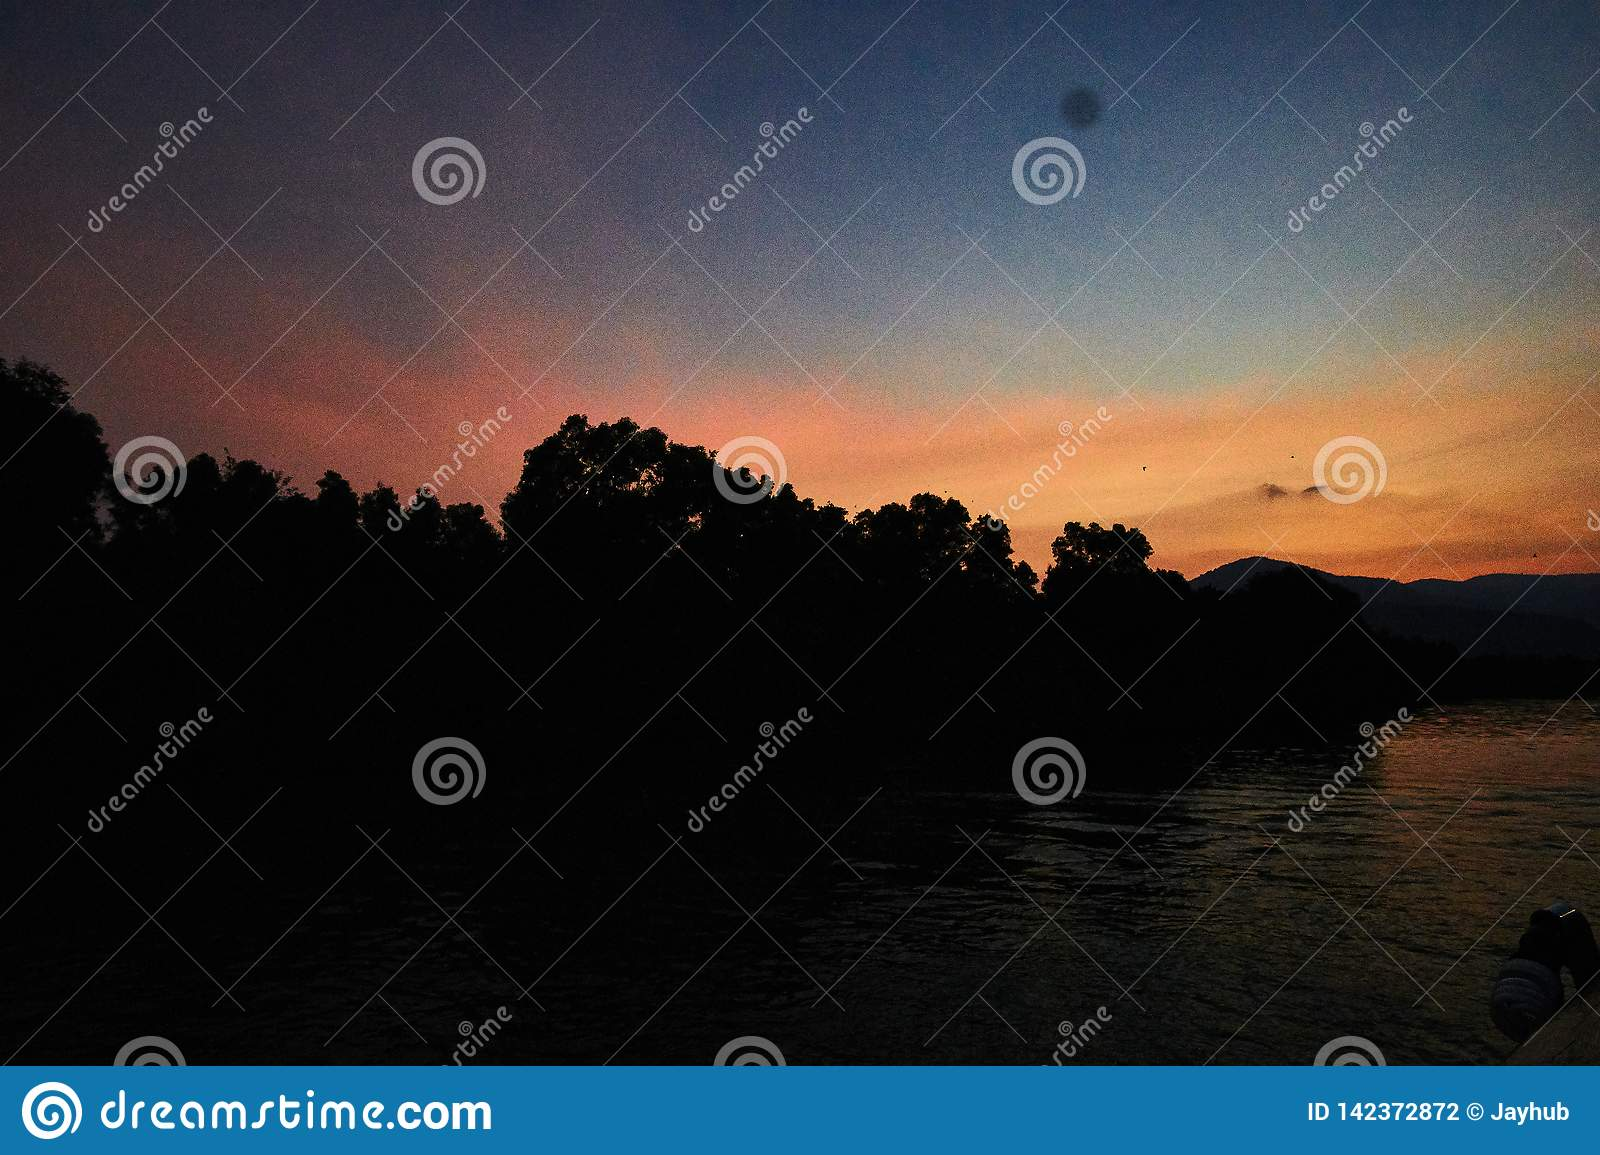 Peaceful Sunset over mountain in Kampot Cambodia